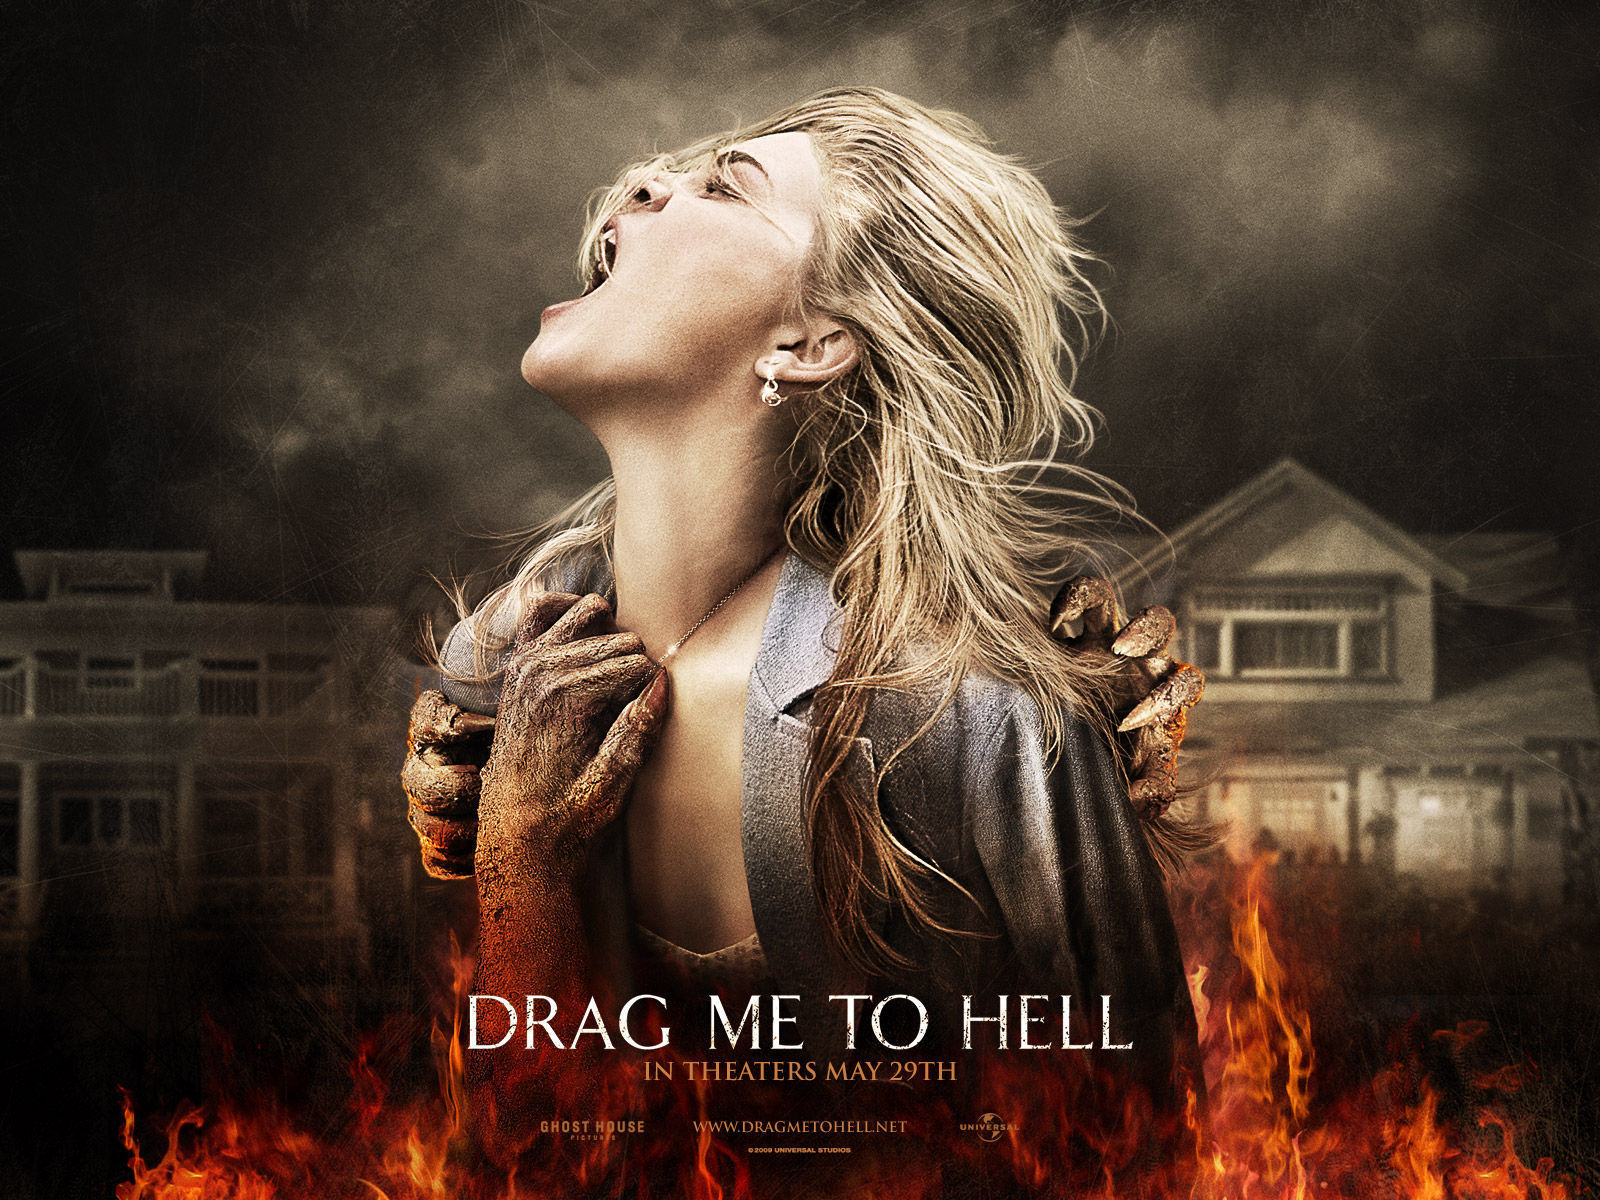 Drag Me to Hell wallpapers   Horror Movies Wallpaper 6396121 1600x1200